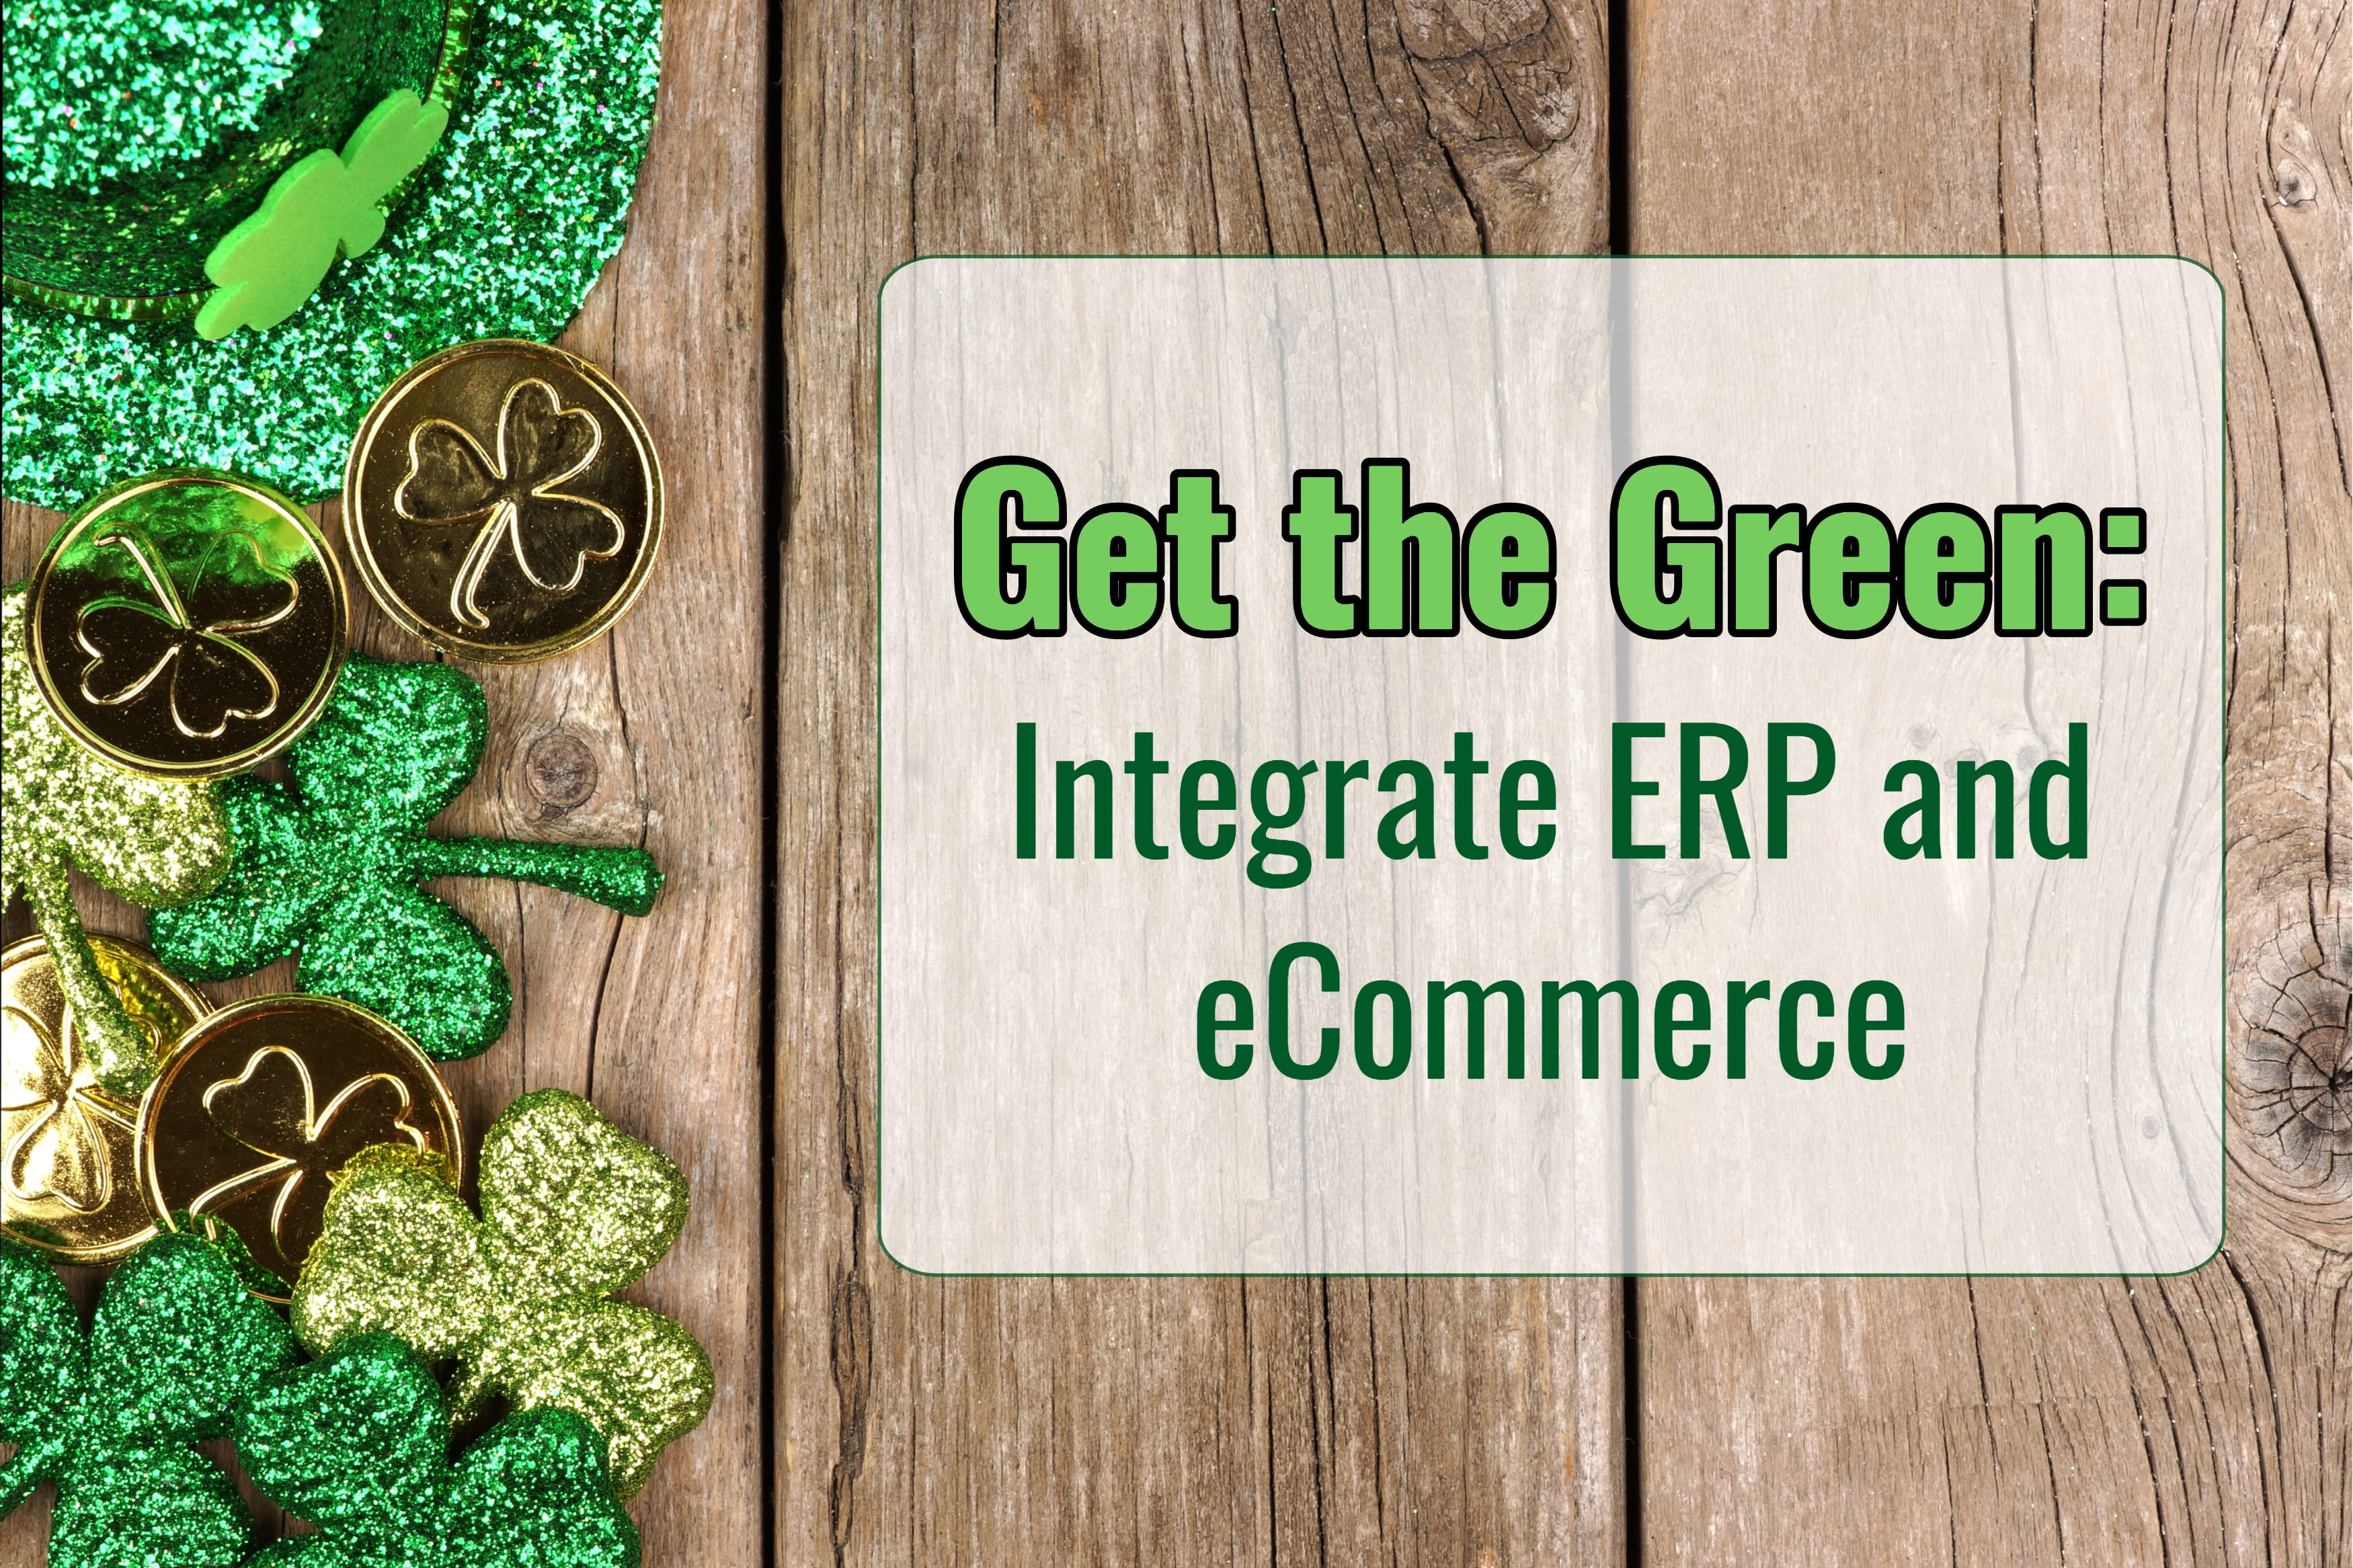 Get the Green: Integrate ERP and eCommerce to Boost Revenue